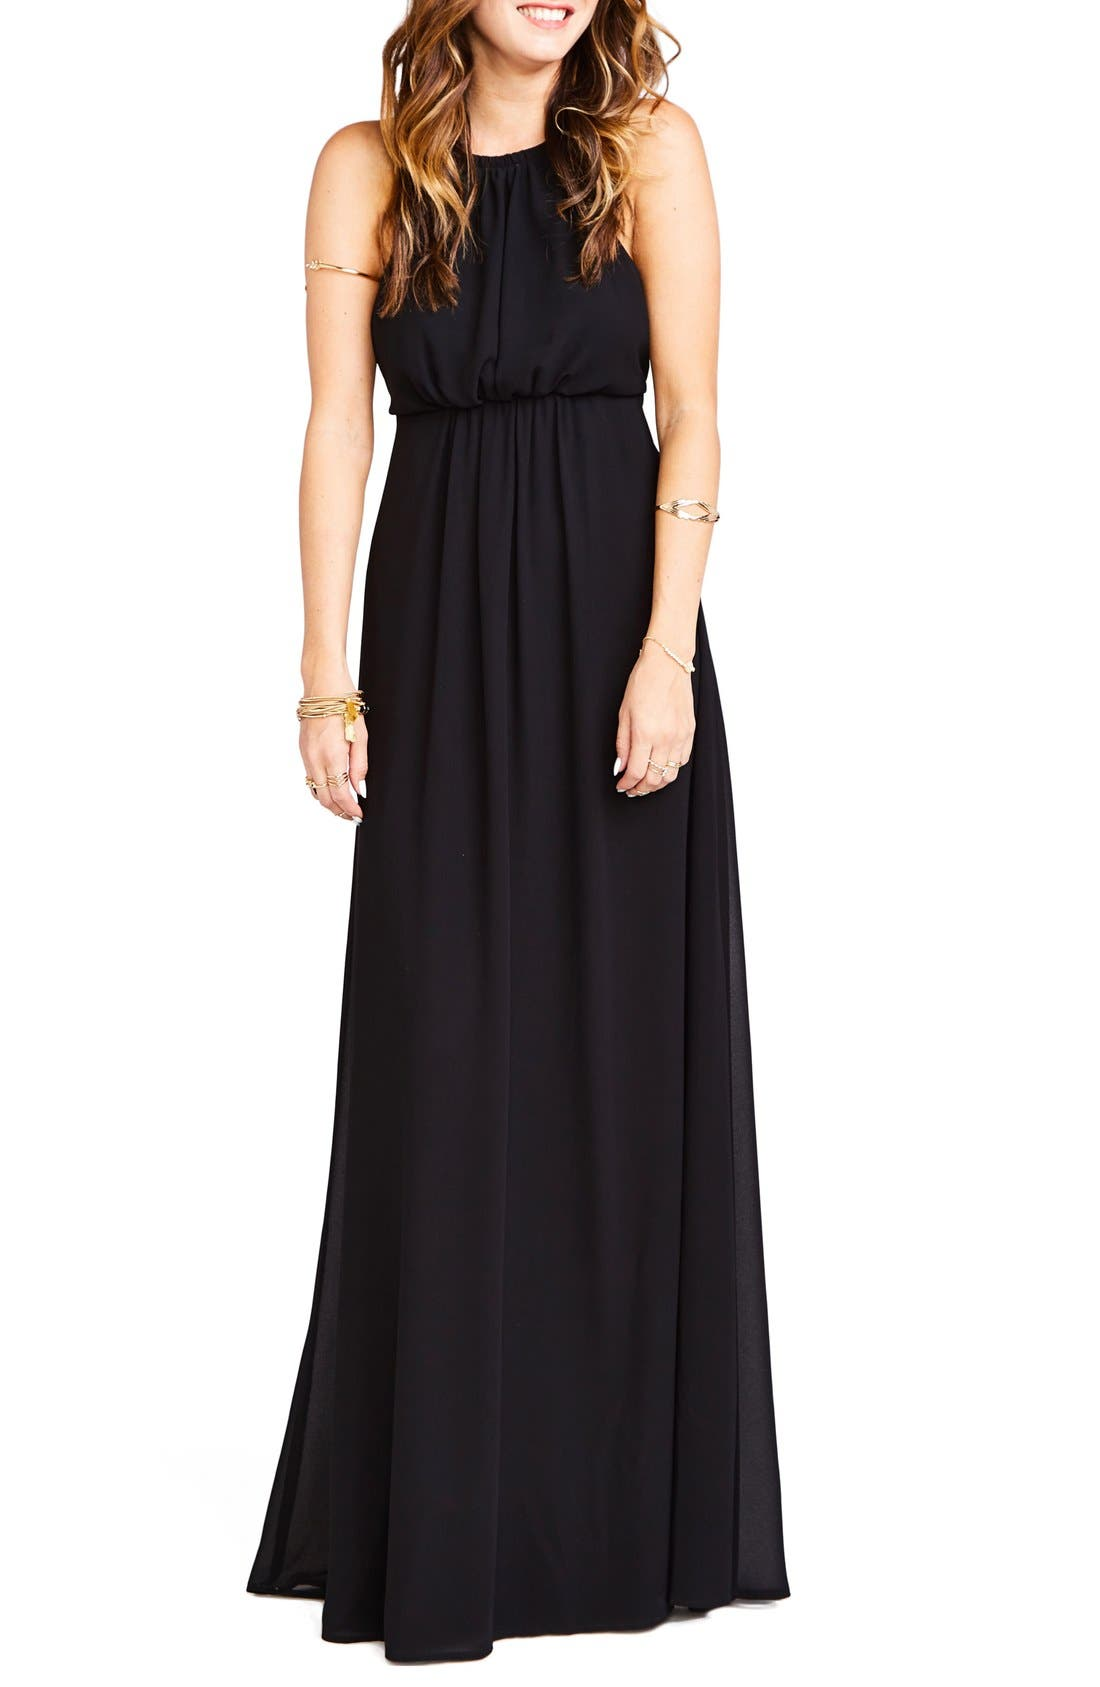 Main Image - Show Me Your Mumu Amanda Open Back Blouson Gown